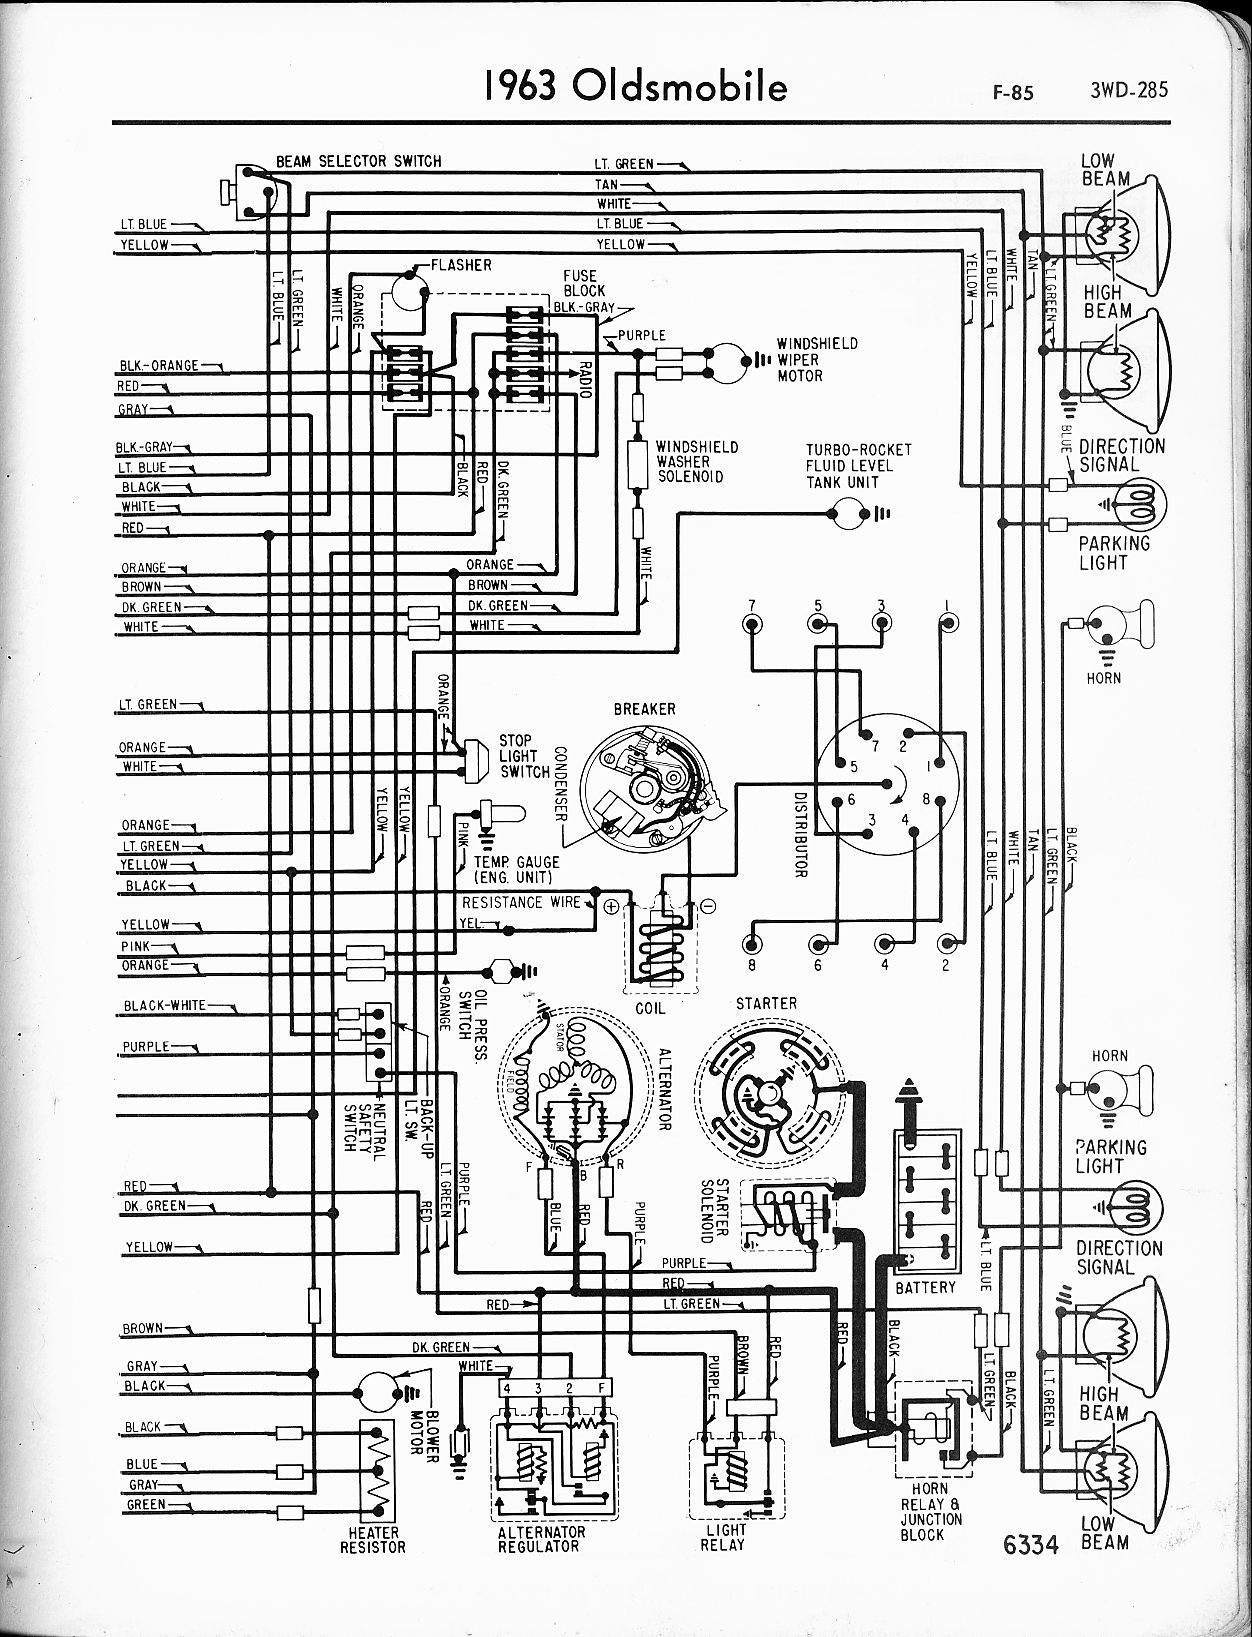 MWire5765 285 oldsmobile wiring diagrams the old car manual project  at crackthecode.co